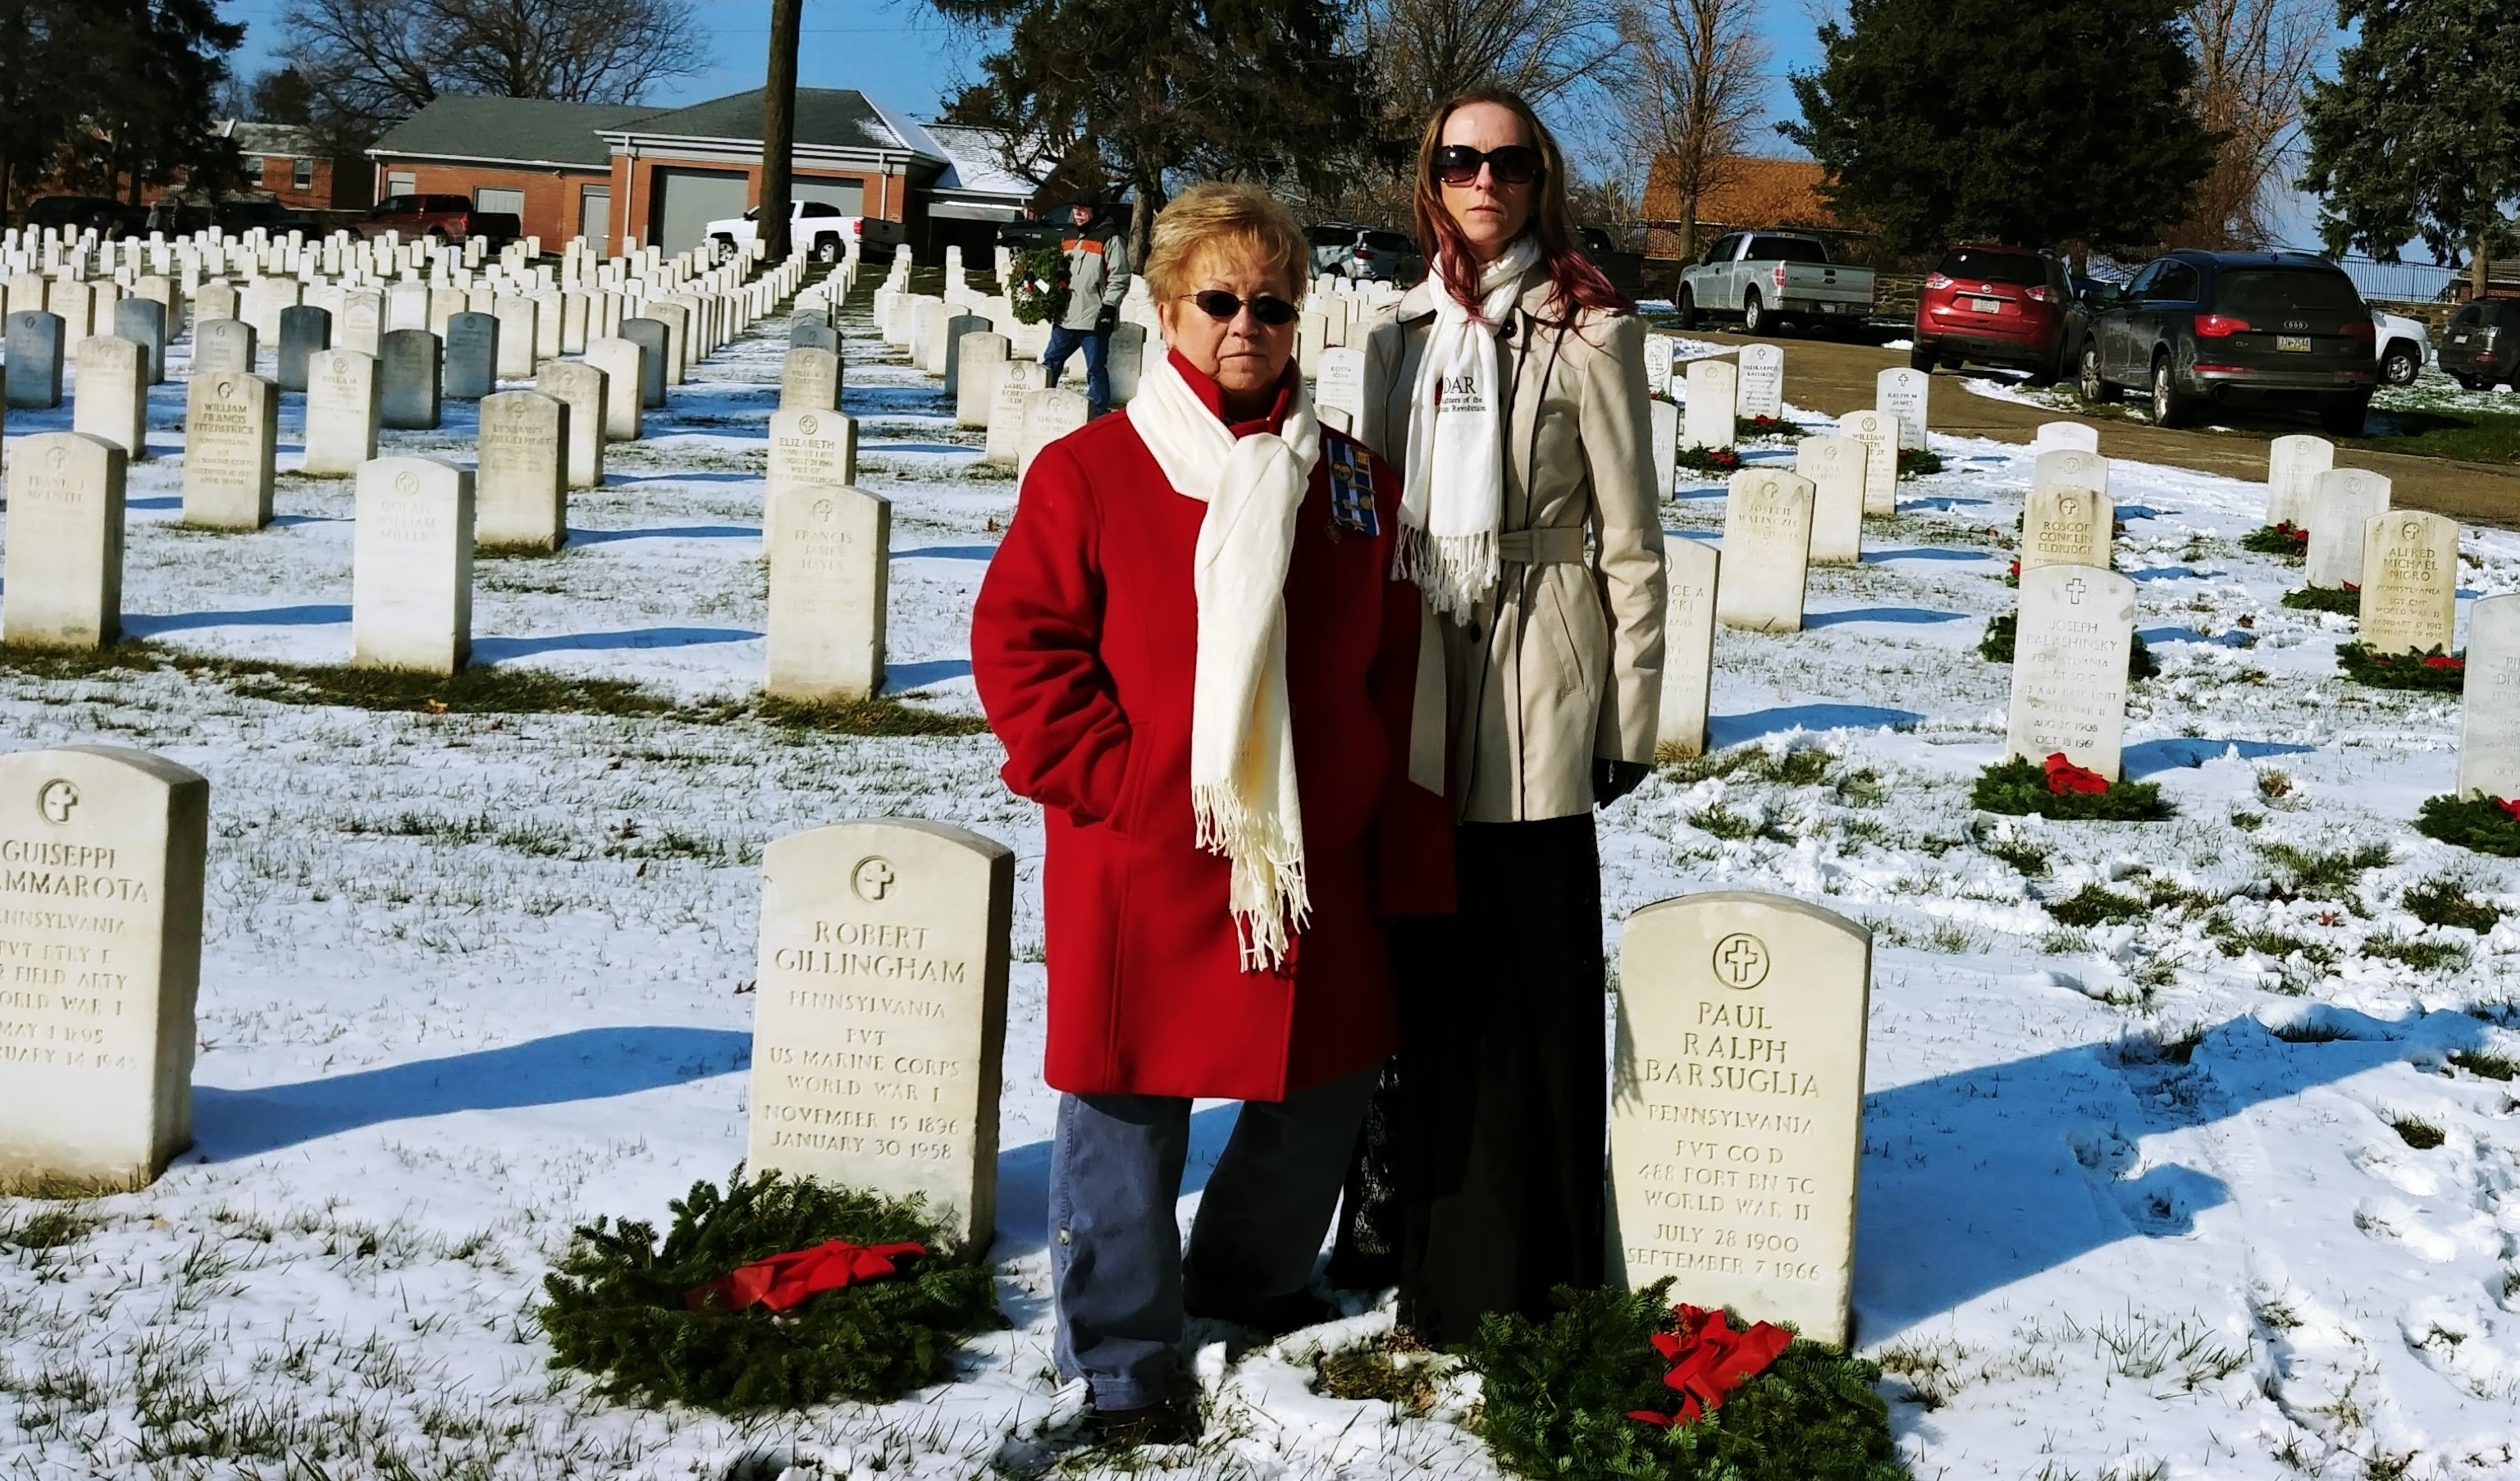 two members standing in cemetery after placing wreaths